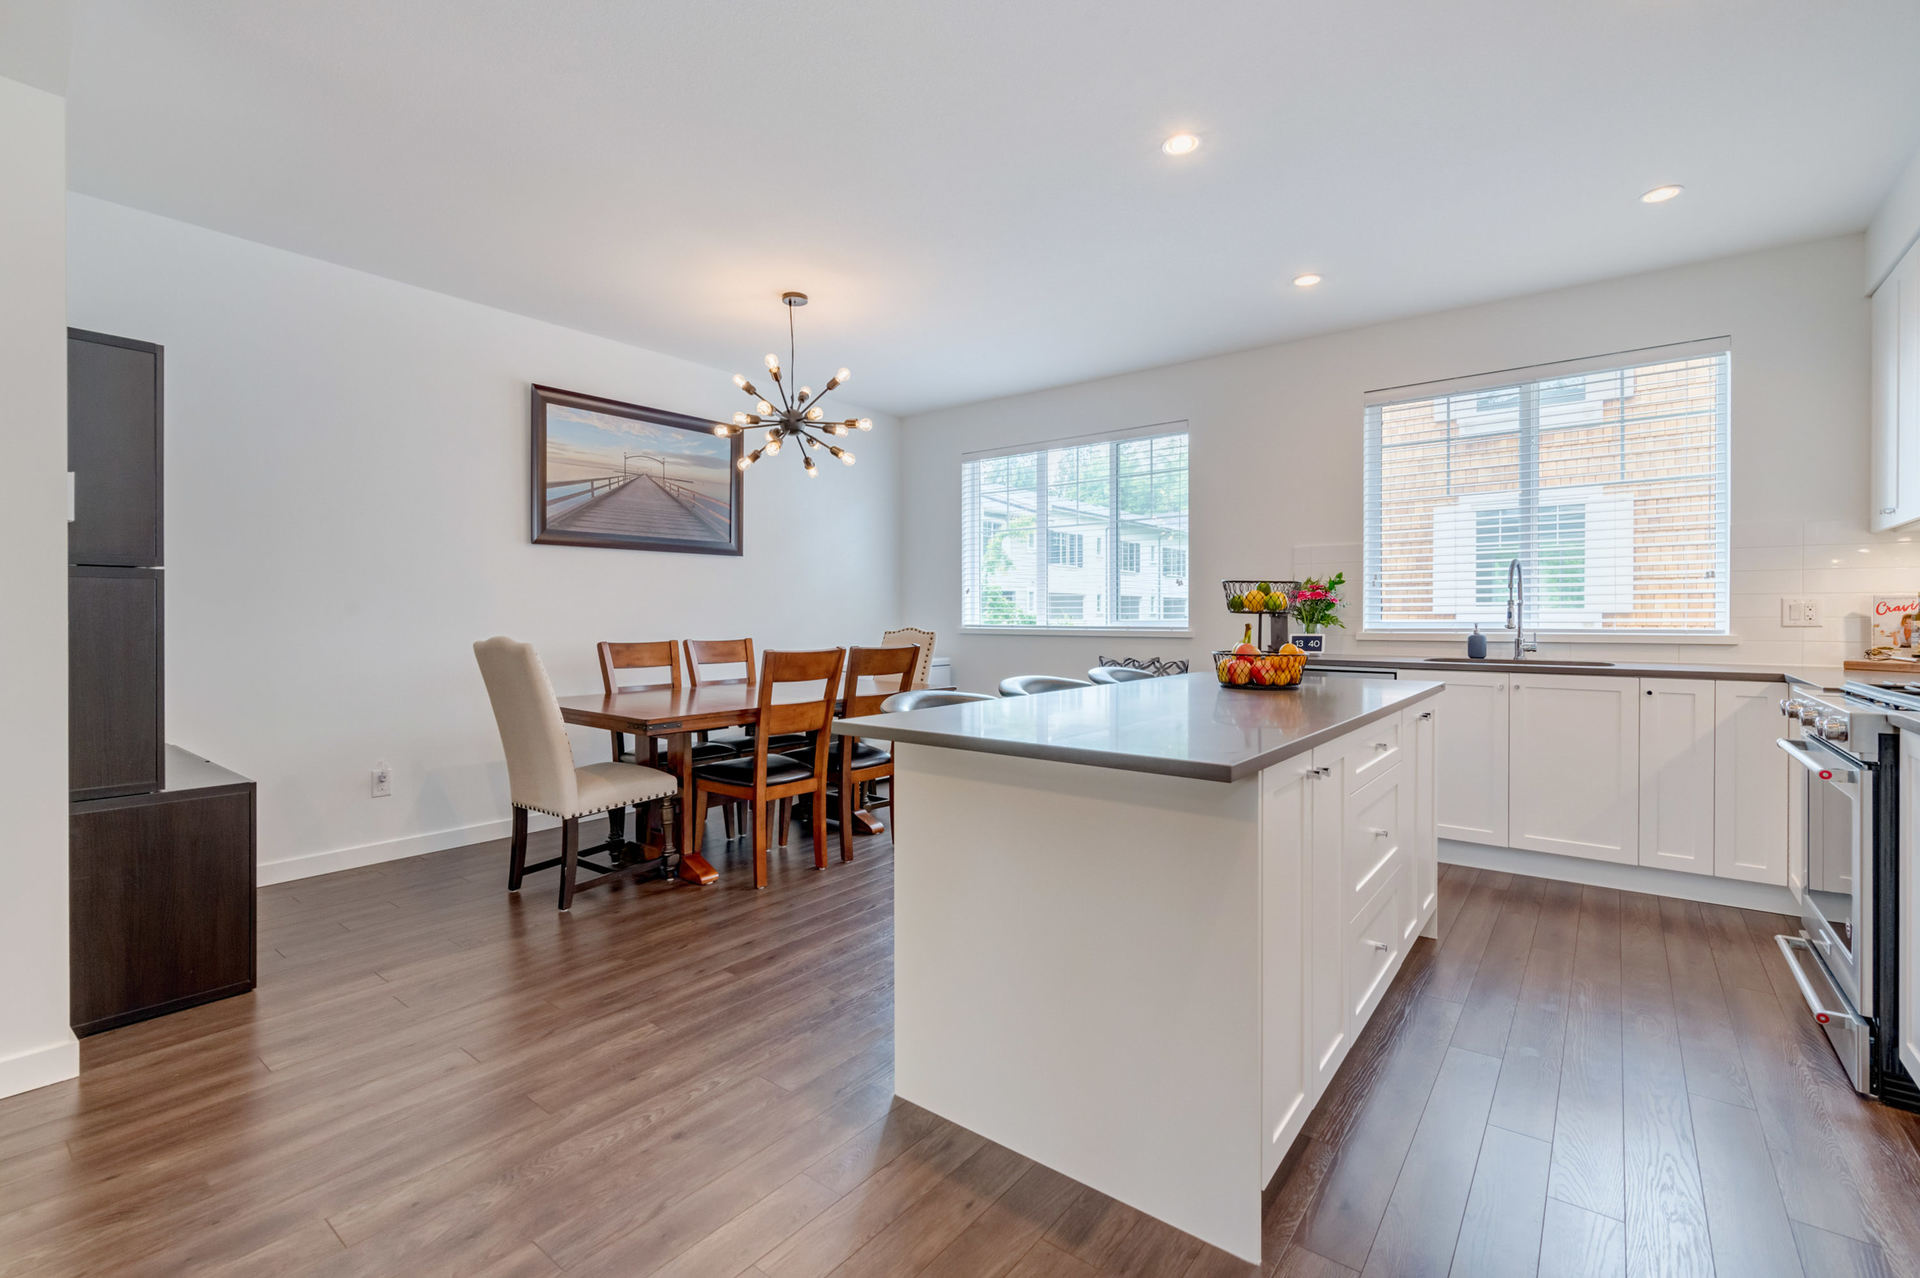 Kitchen & Dining Room at 22 - 127 172 Street, Pacific Douglas, South Surrey White Rock